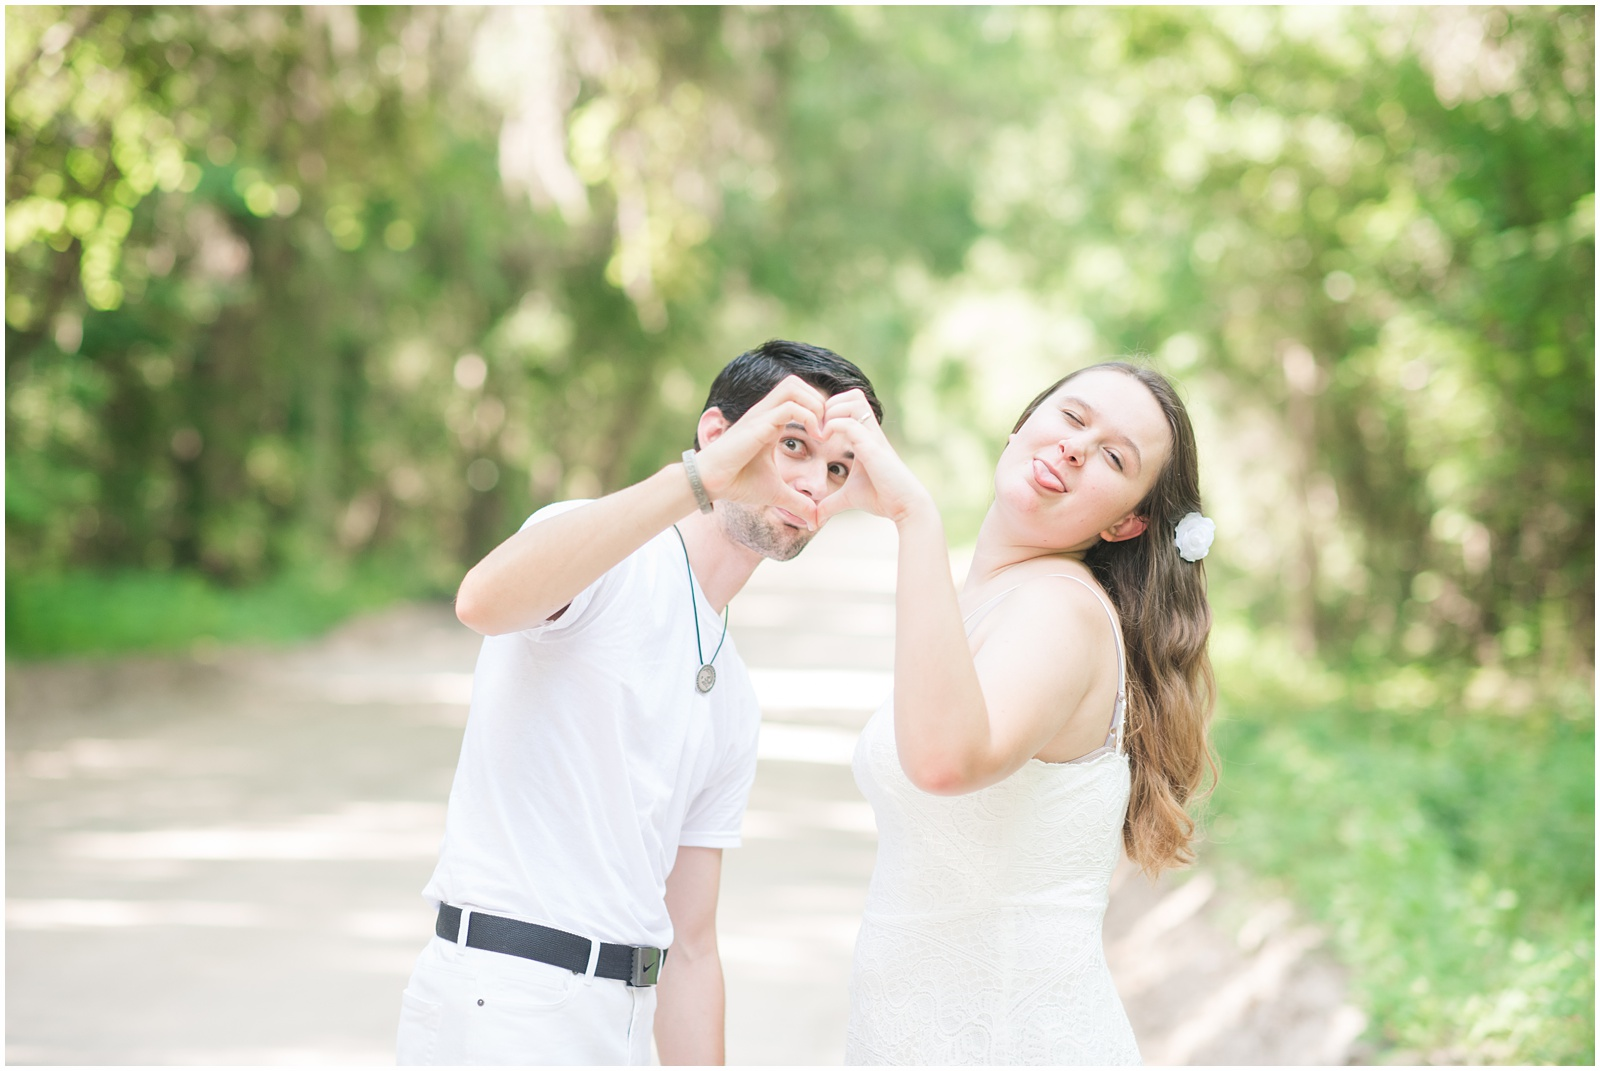 Fort White_Florida_Outdoor_Engagement_Portraits_28.jpg